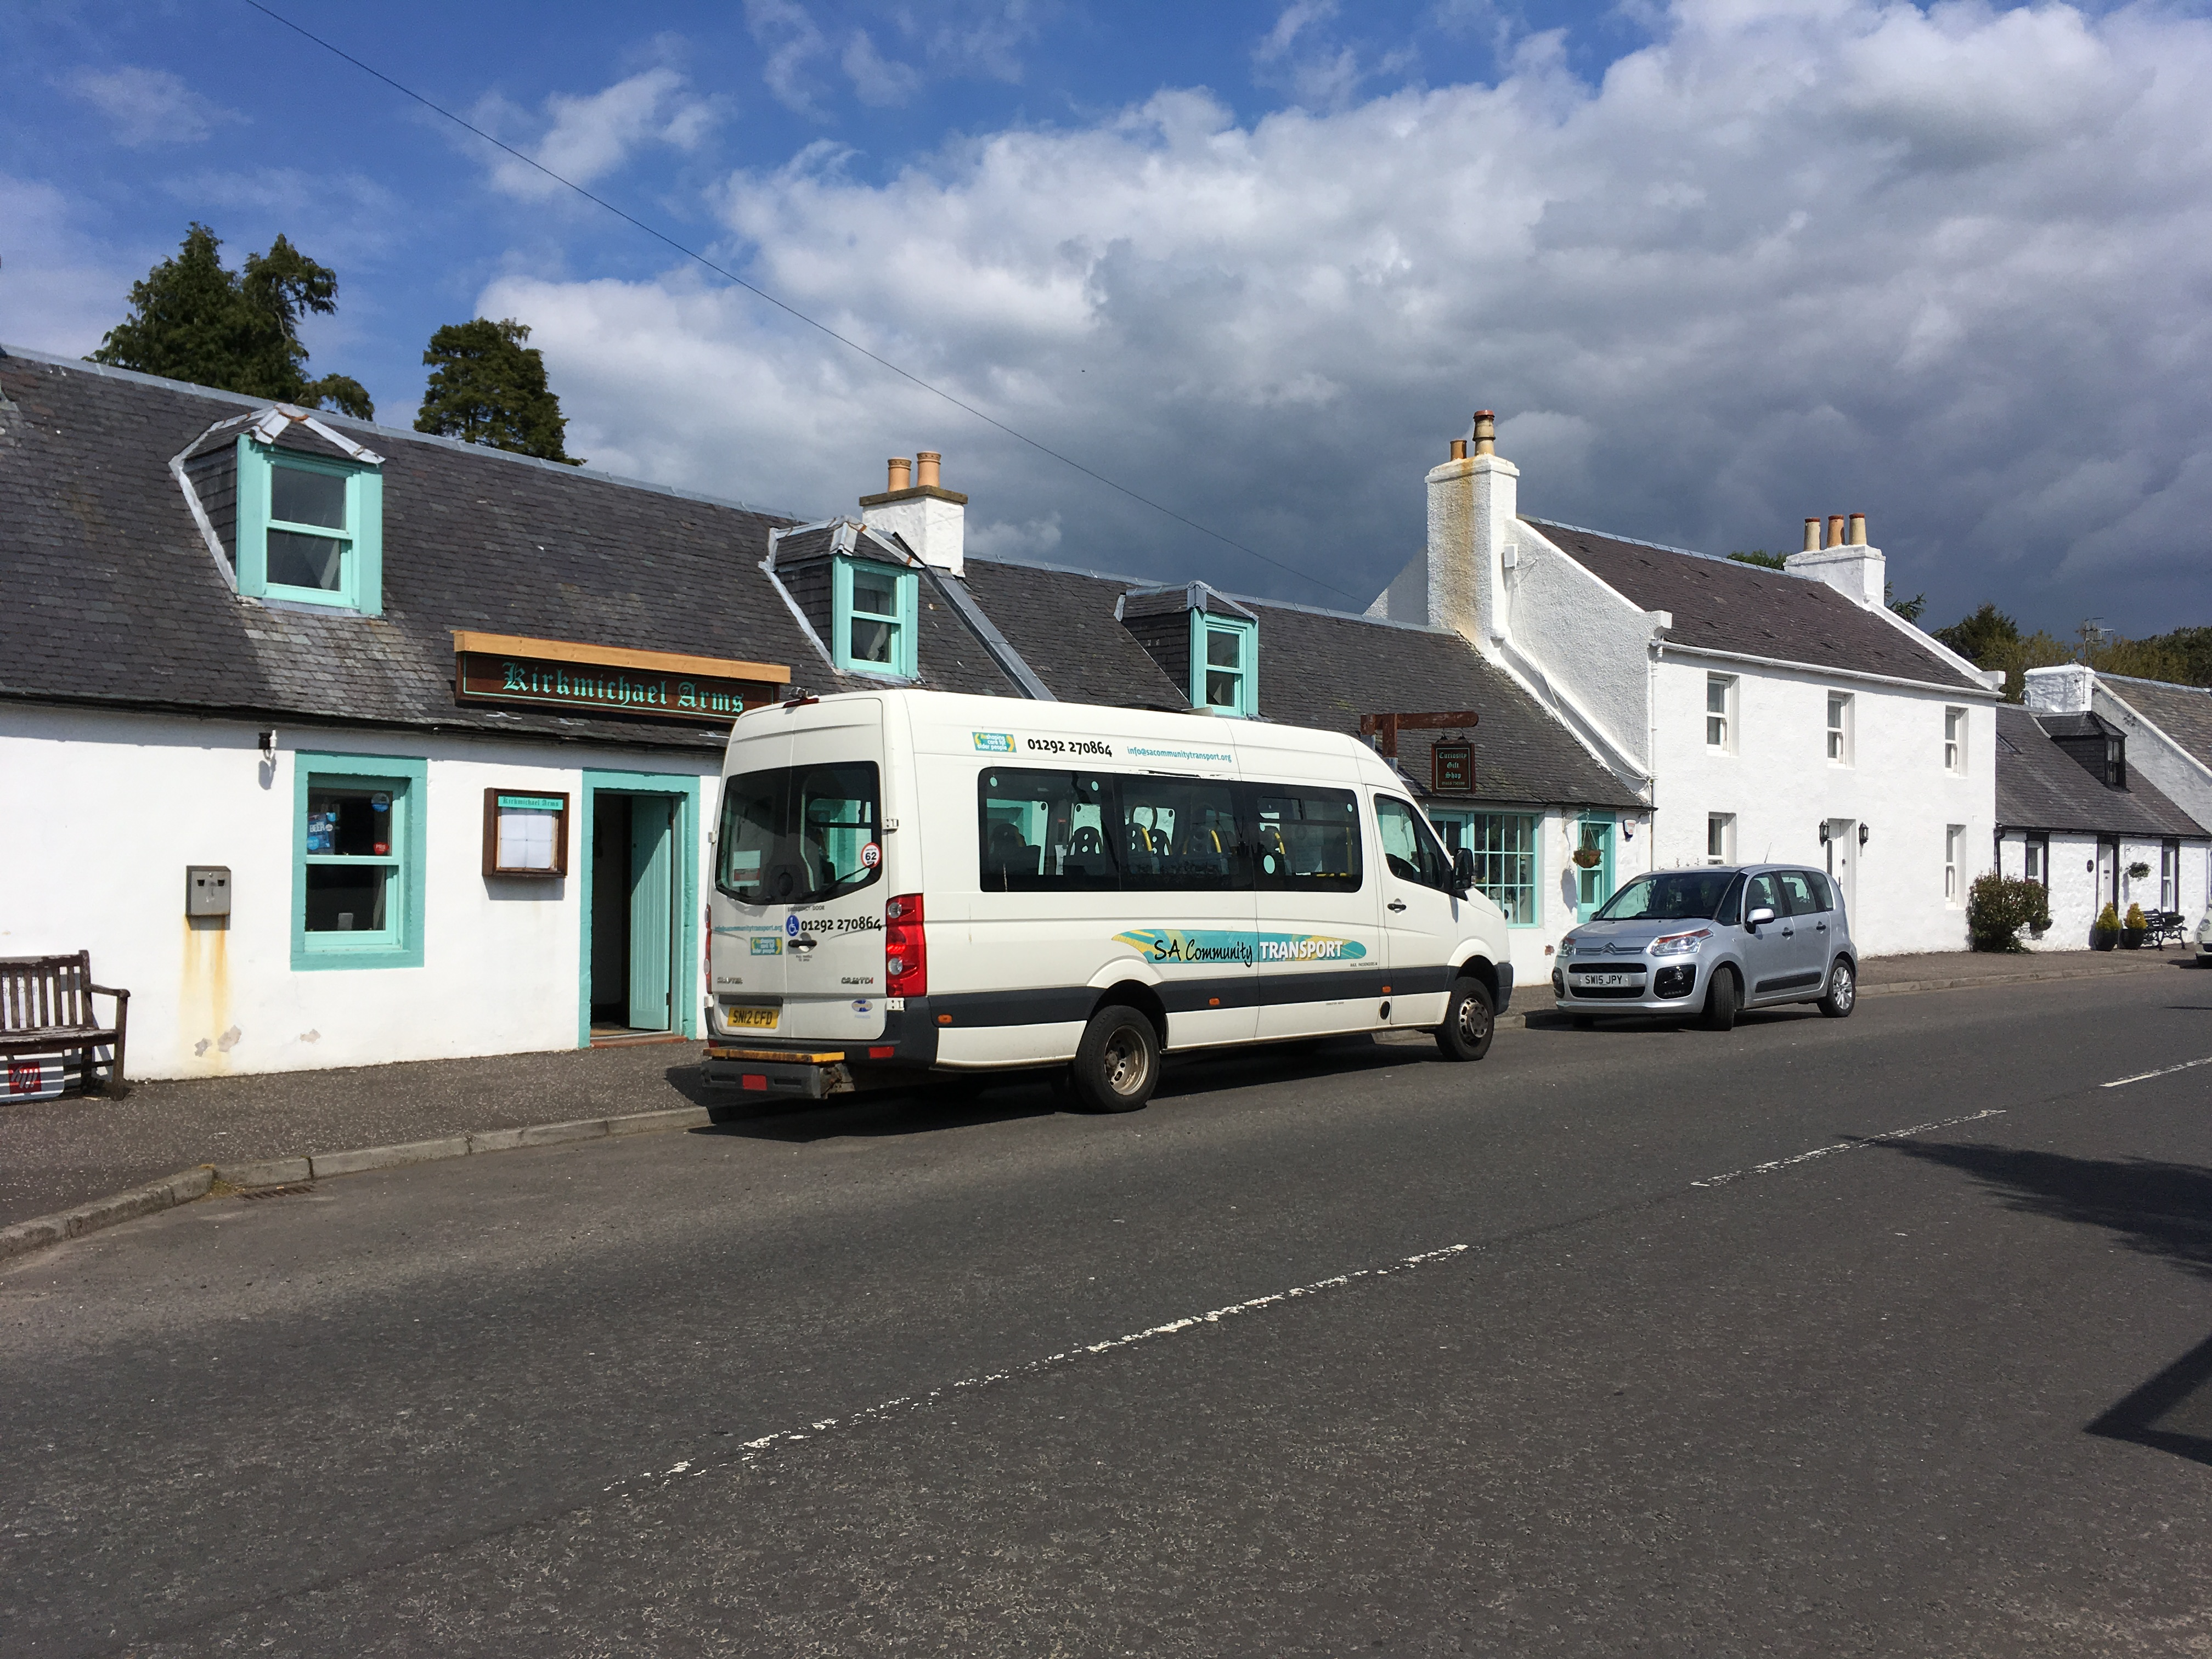 South AyrshireCommunity Transports SACT3 VW Crafter sits on a road outside a restaurant.